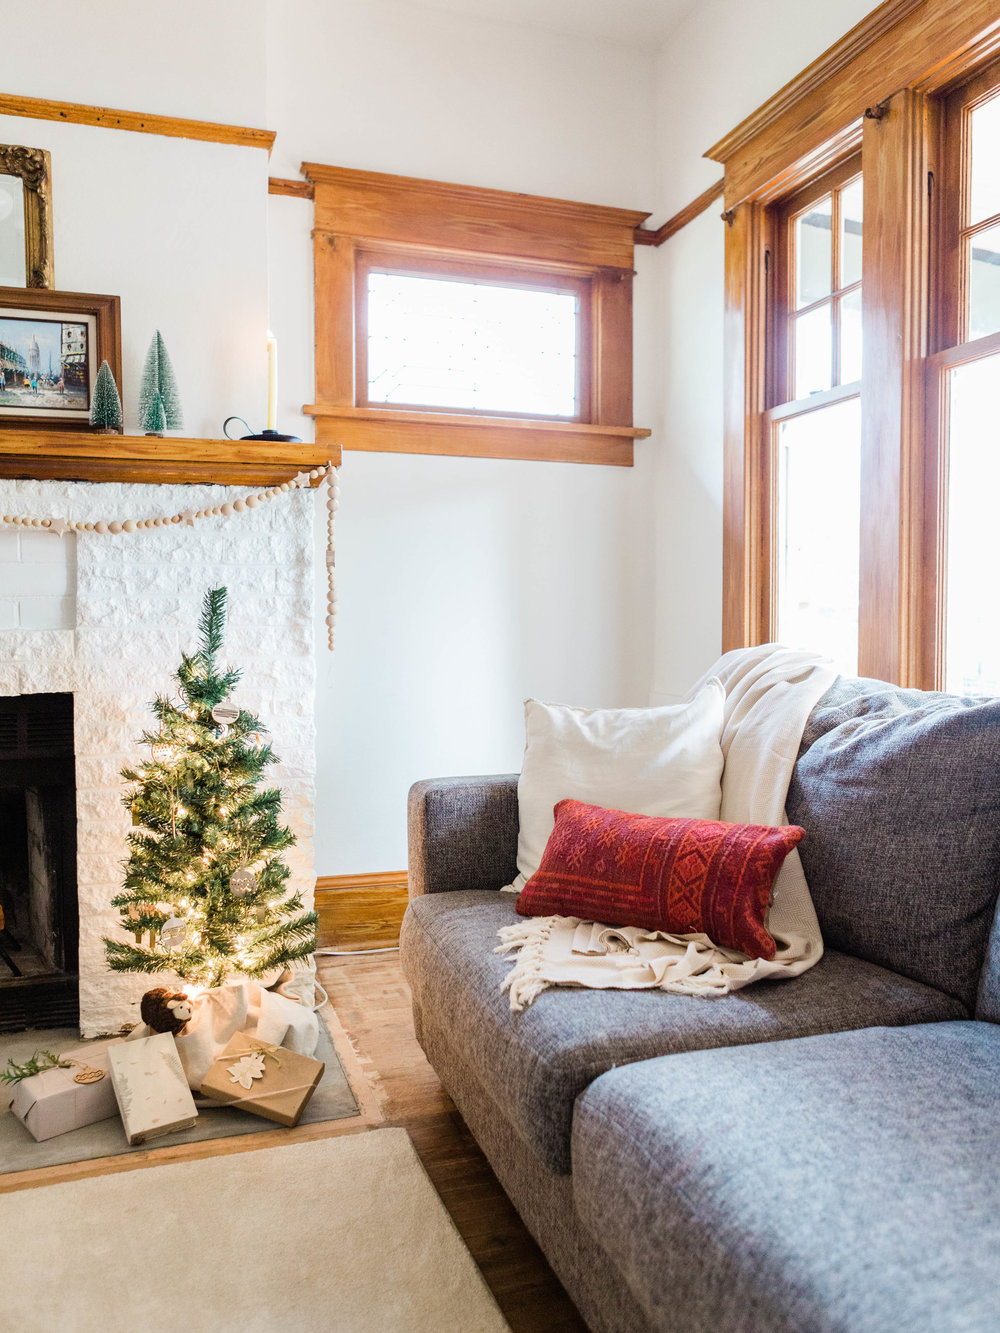 Simple and minimal holiday decor for your living room from Foraged Home